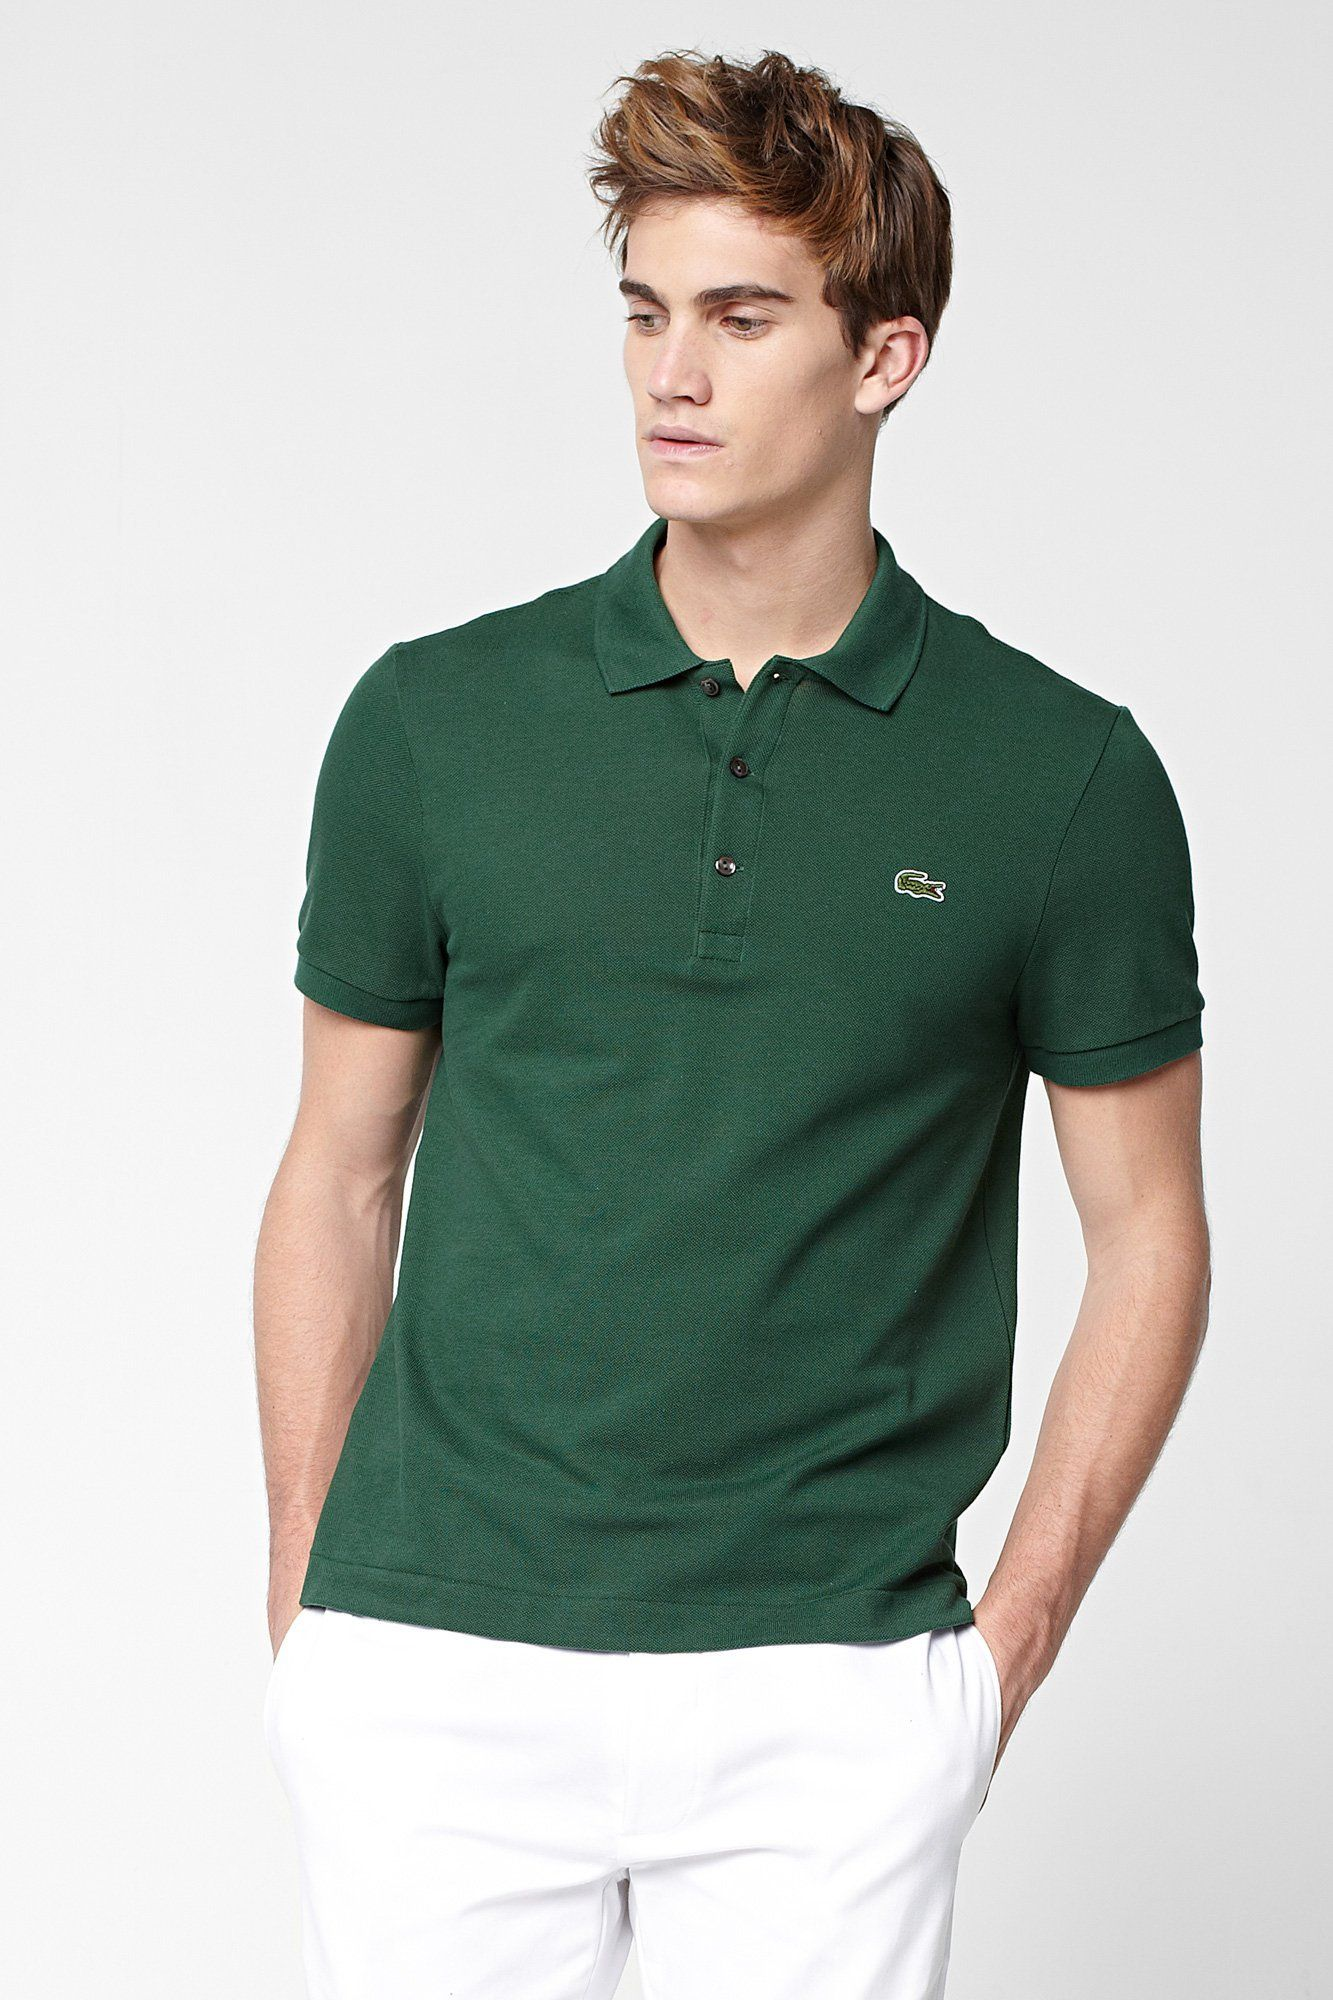 934e60402 Lacoste Short Sleeve Slim Fit Pique Polo shirt